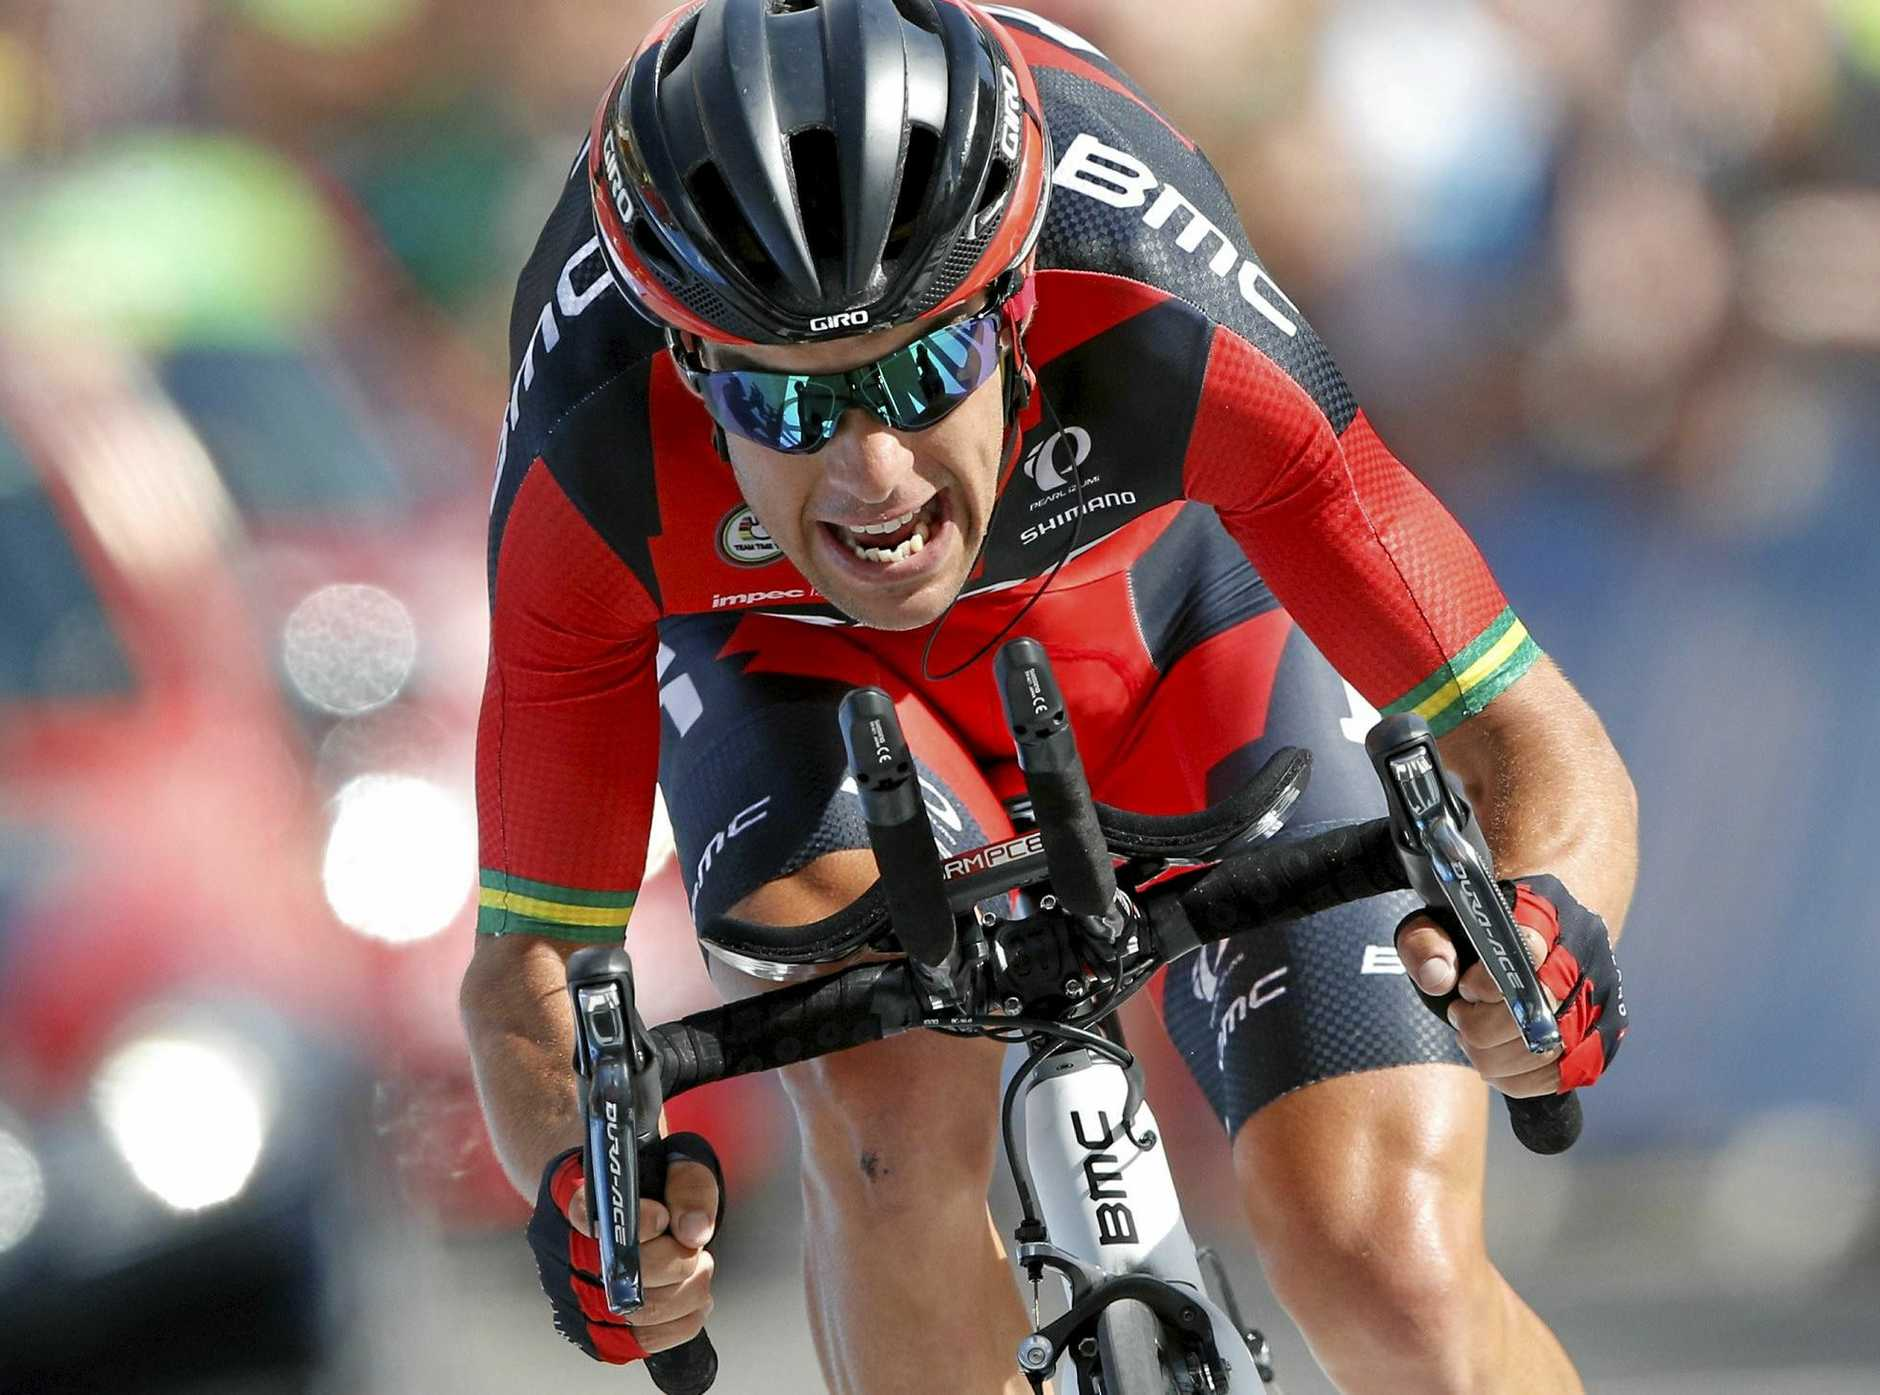 Australia's Richie Porte rides during the 18th stage of the 2016 Tour de France.